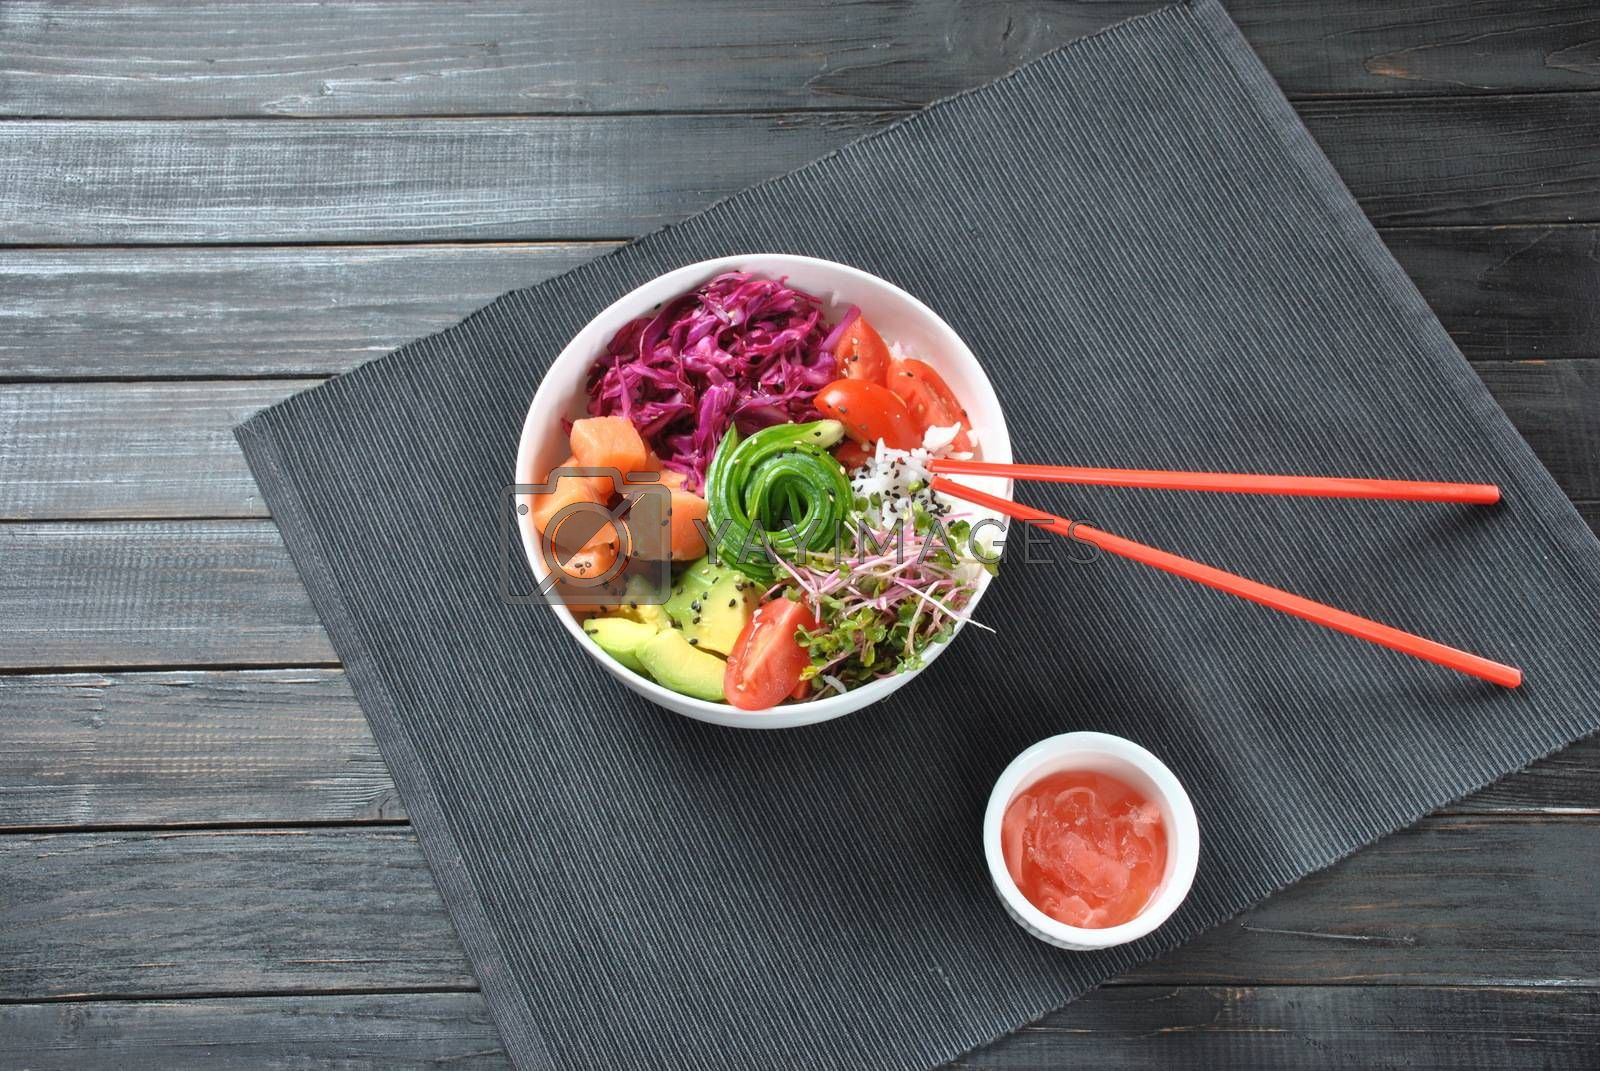 Organic food. Fresh seafood recipe. fresh poke bowl with salmon,  rice, red cabbage, avocado, cherry tomatoes and radish sprouts on wooden background. Food concept Poke Bowl